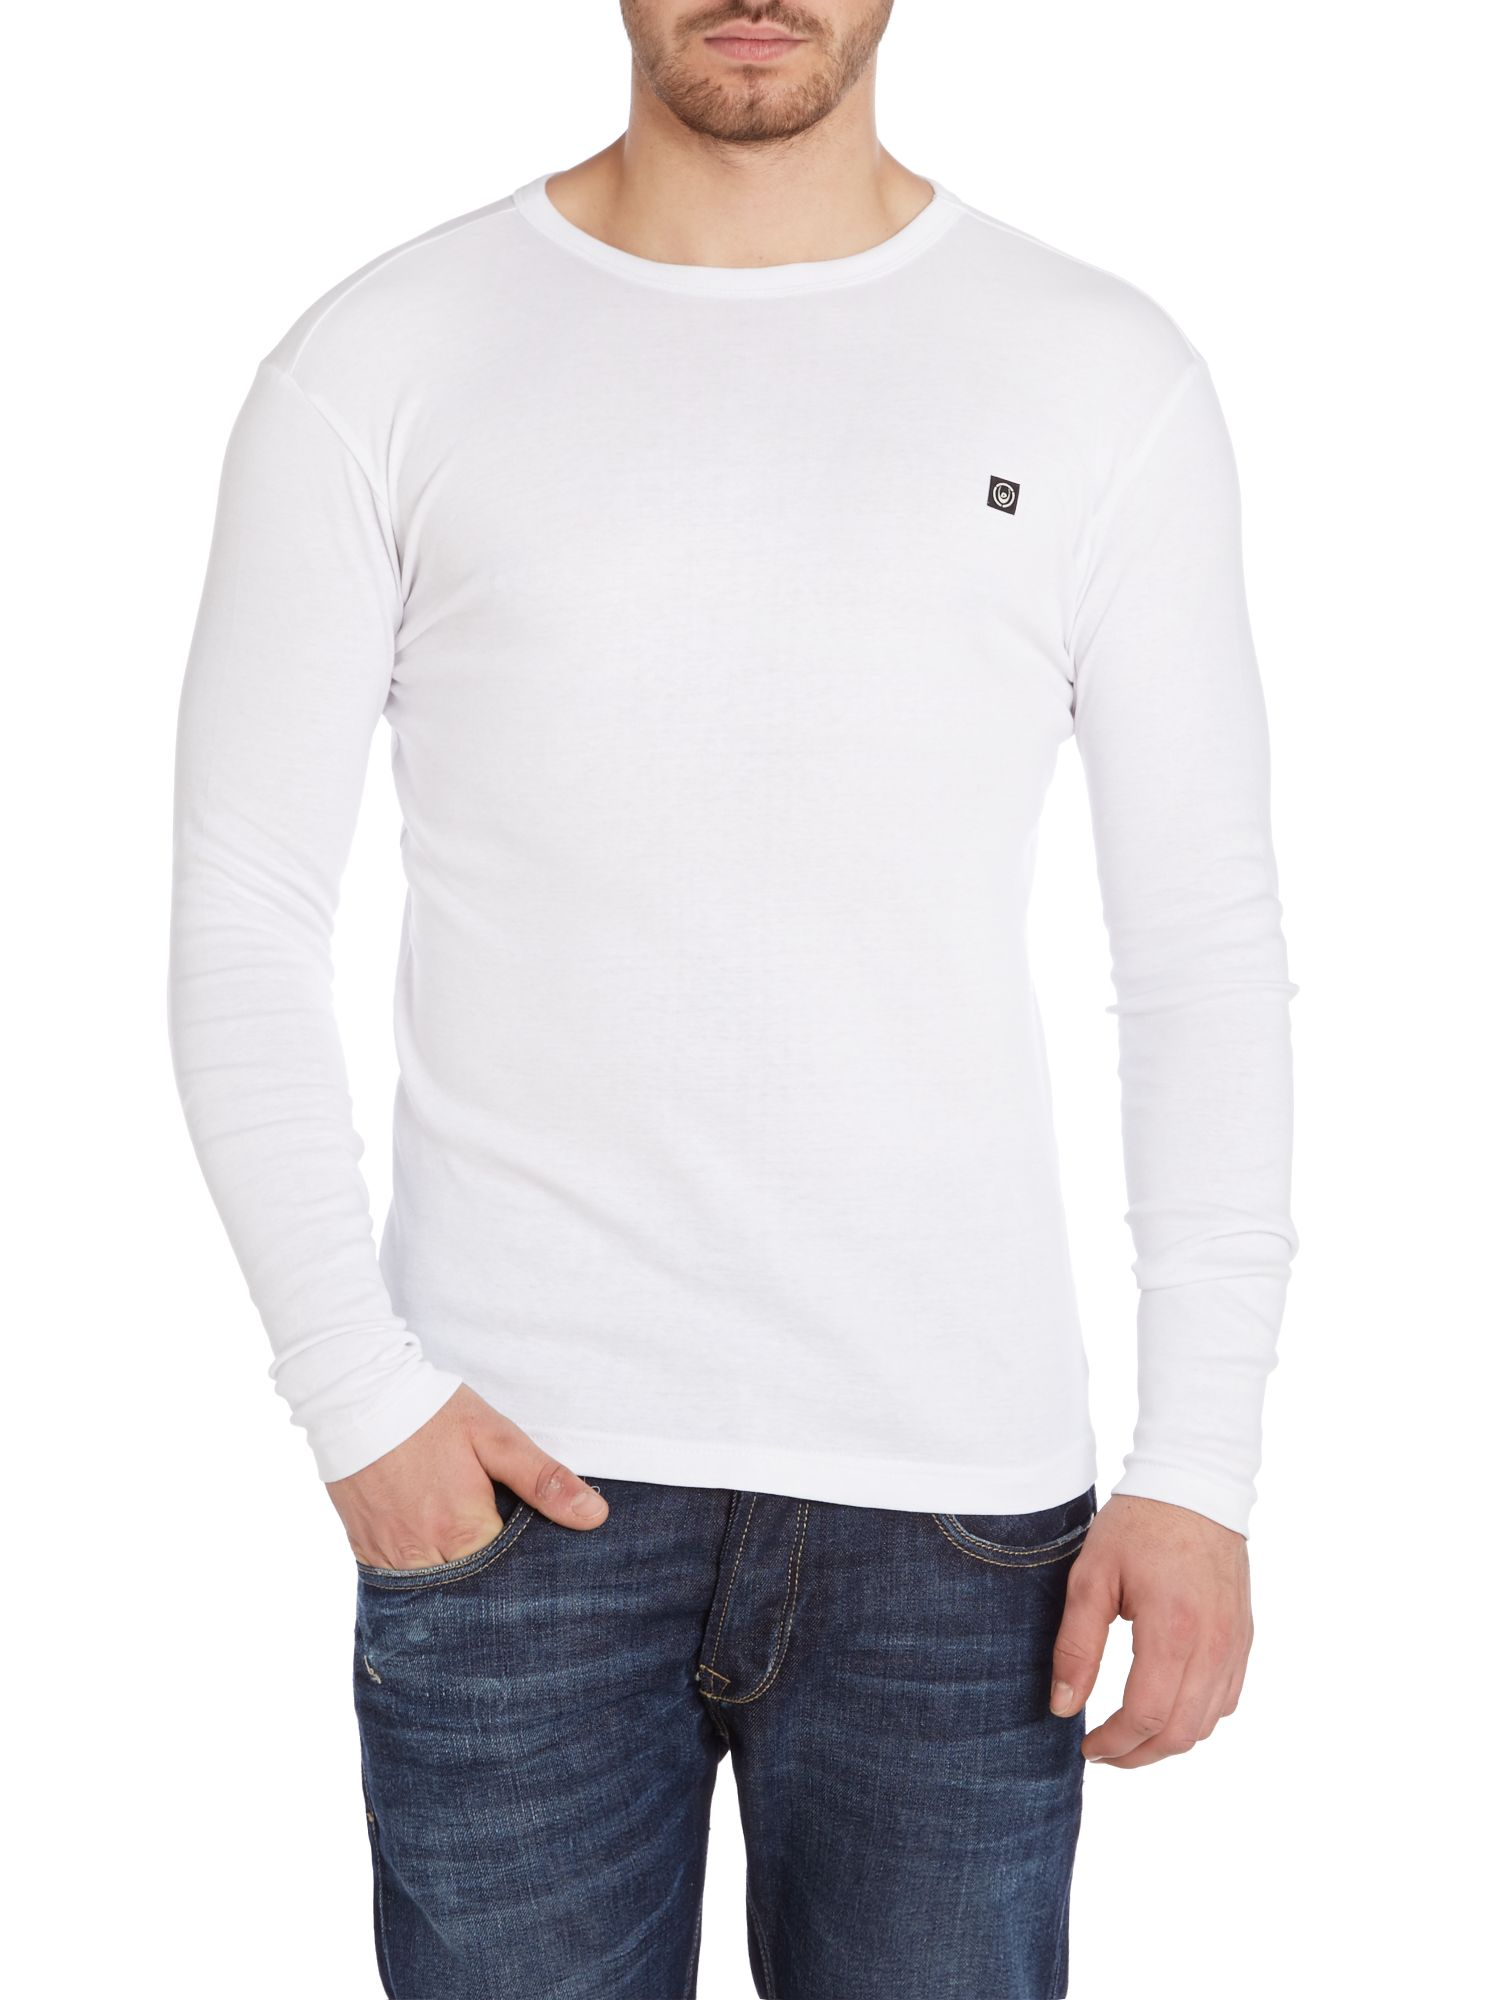 Nash long sleeve crew neck t-shirt